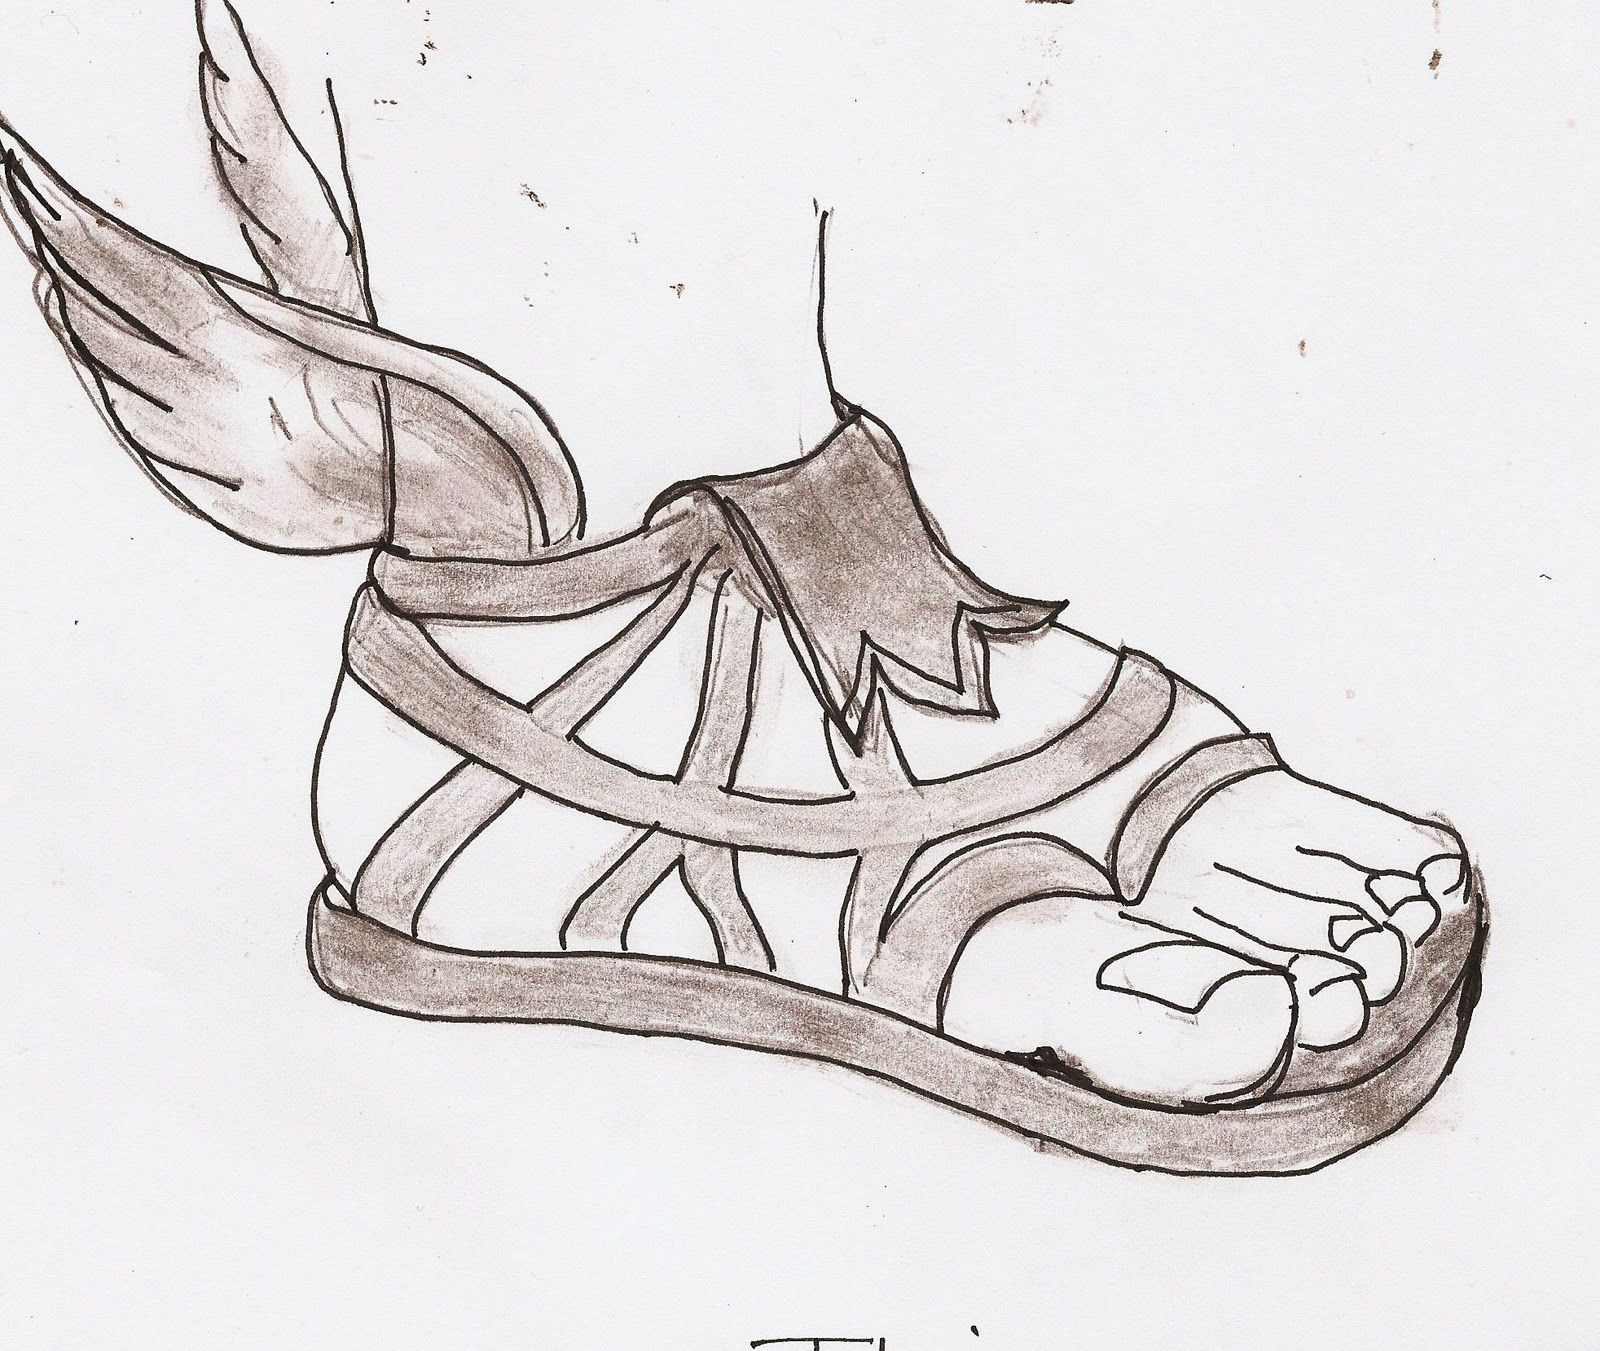 Hermes sandals dance shoes - History Of Sandals Series Of Posts With Description And Sketches Of Diferent Types Of Footwear In Ancient Greece Sandals Assorted Krepis Kothornos